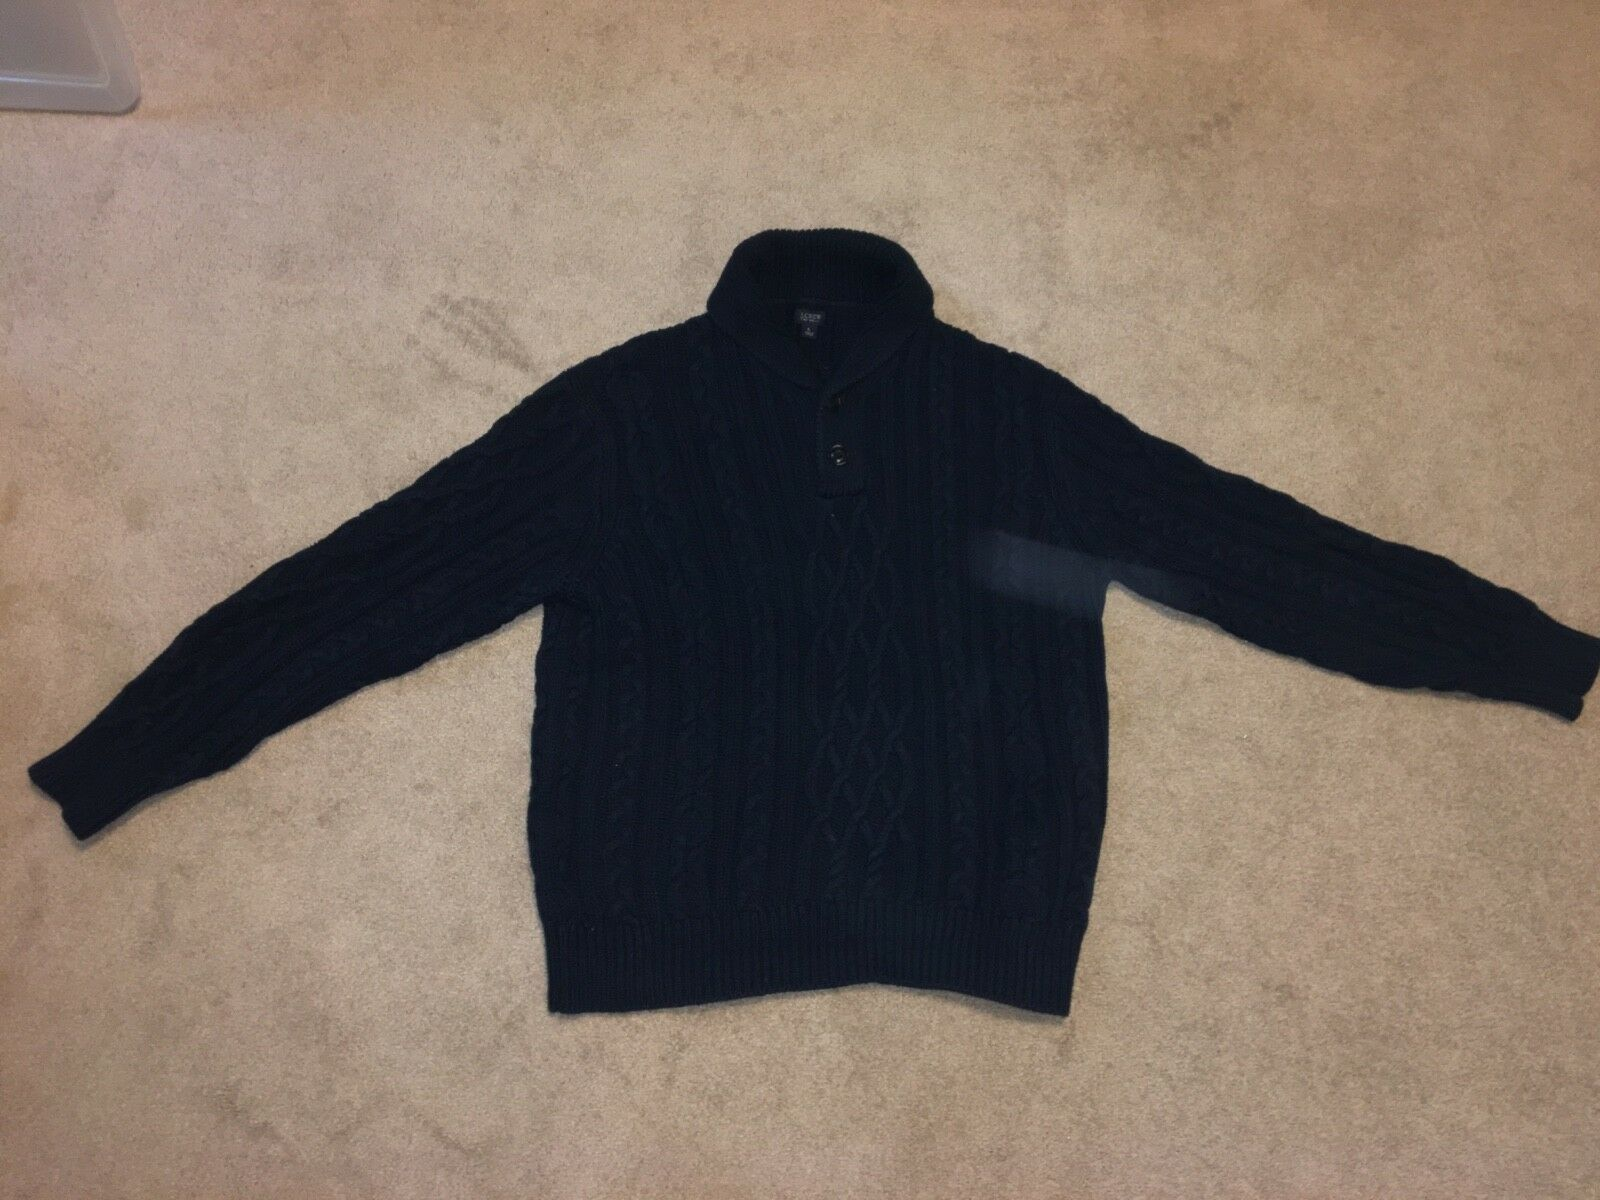 J. Crew Men's Large Navy bluee Shawl Cardigan Cable Knit Sweater